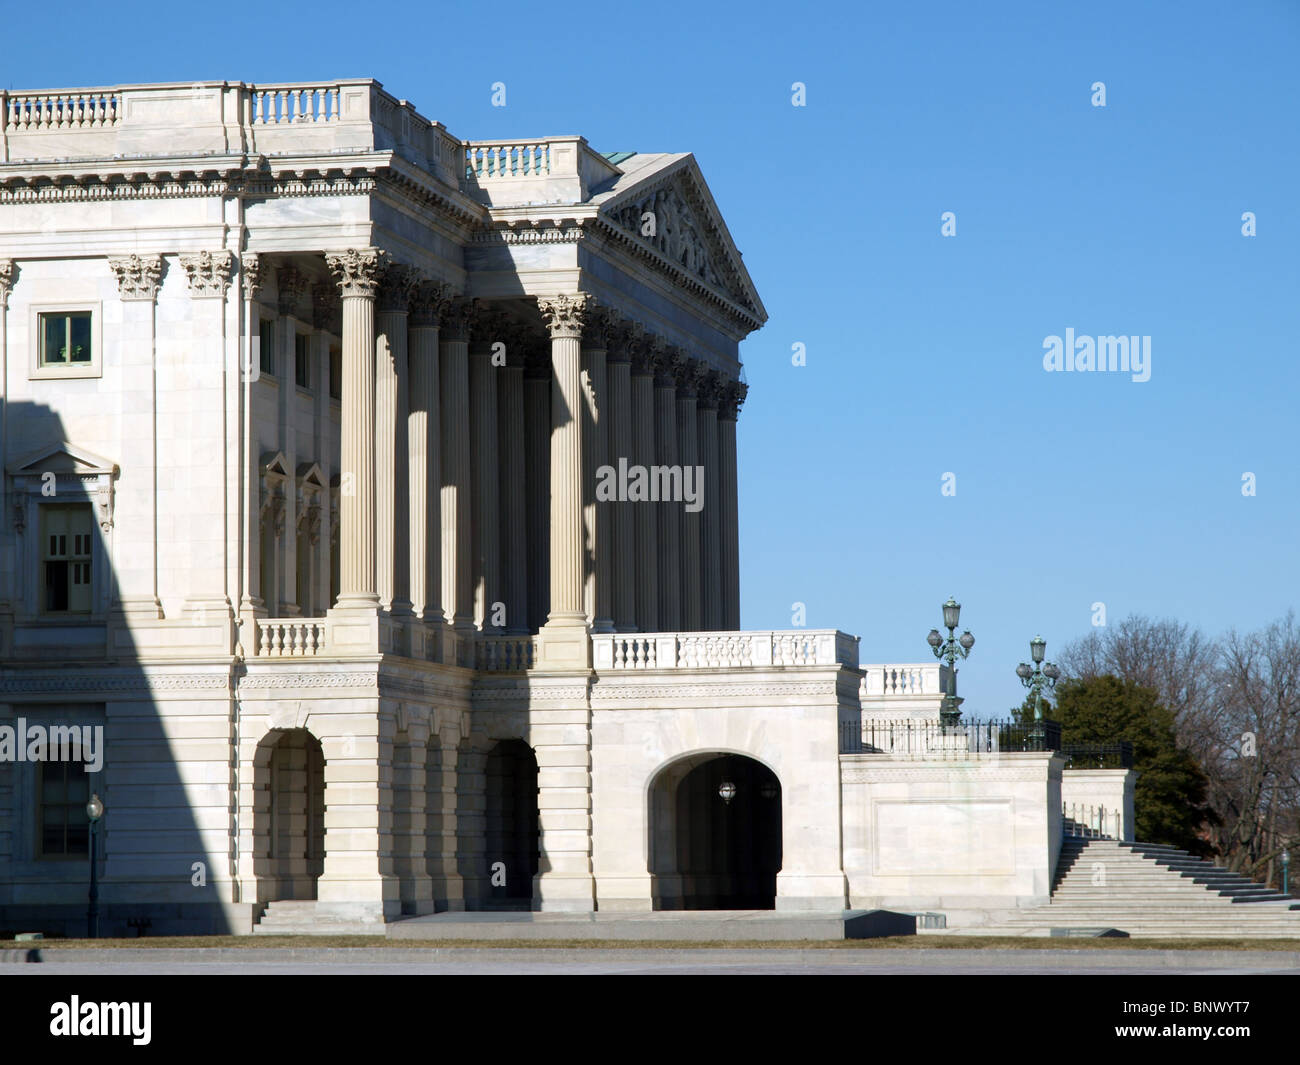 Profile of the United States Supreme Court building in Washington DC. - Stock Image